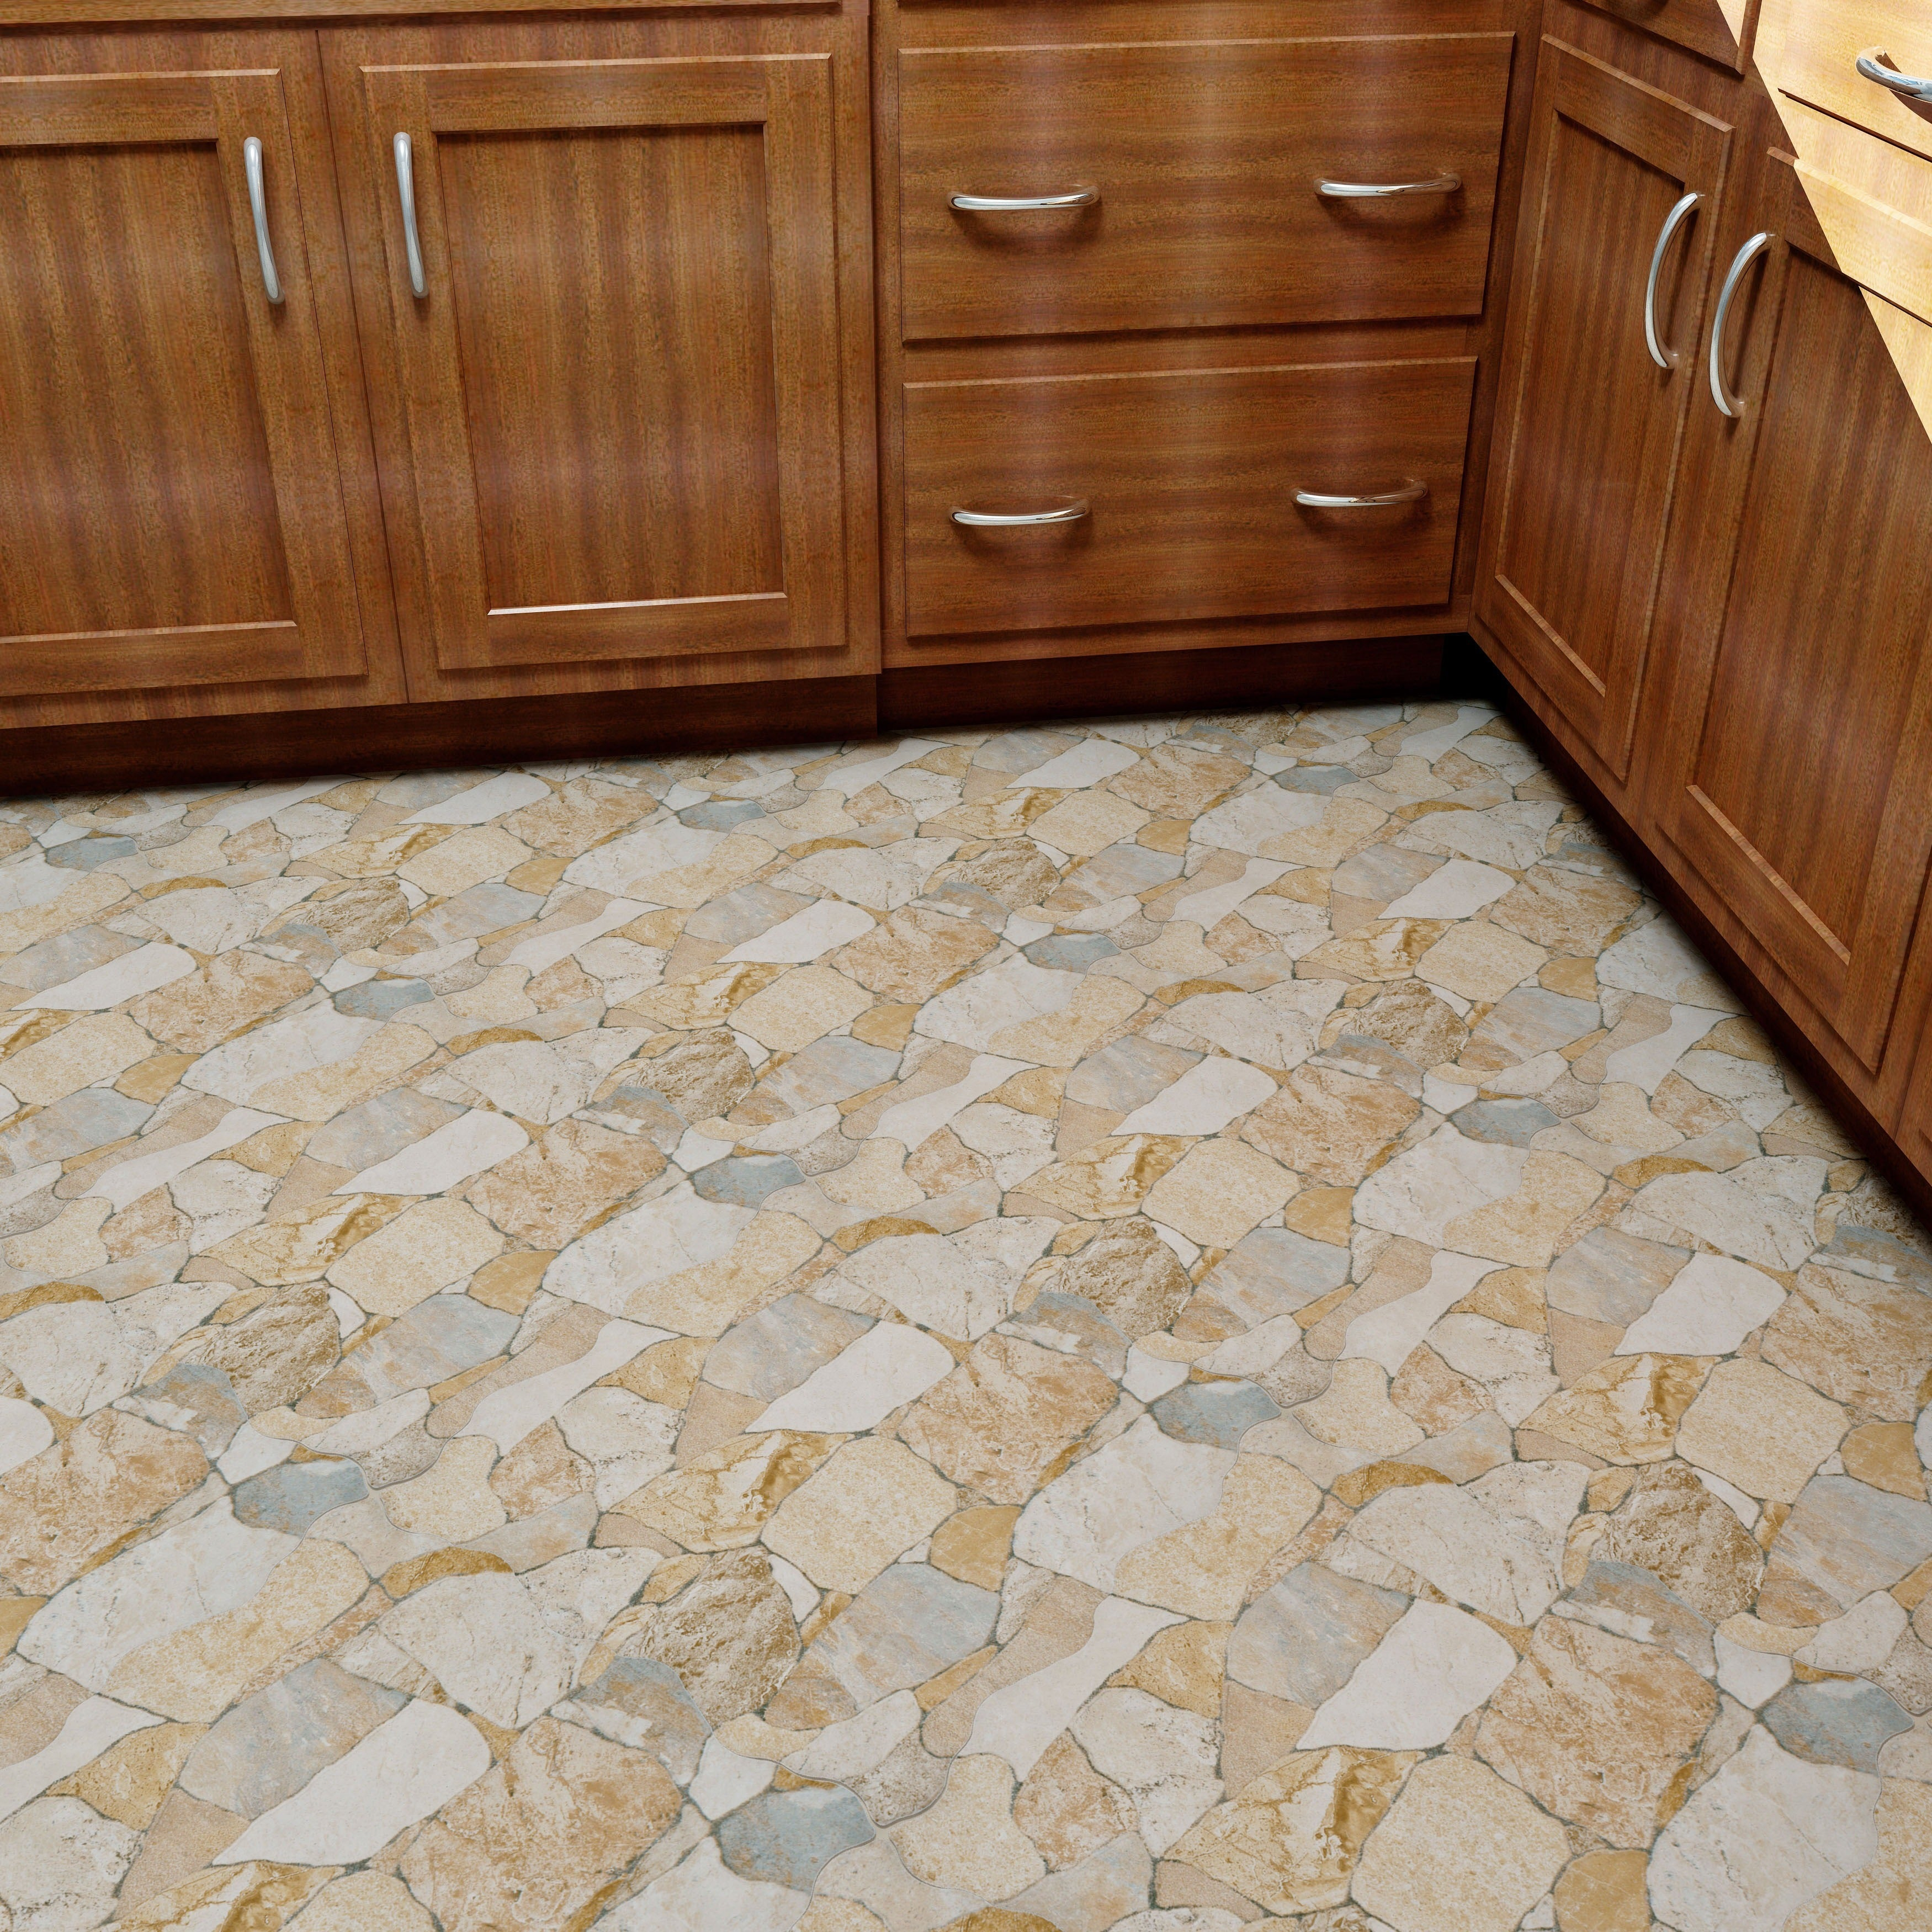 SomerTile 17 75x17 75 inch Atticus Beige Ceramic Floor and Wall Tile